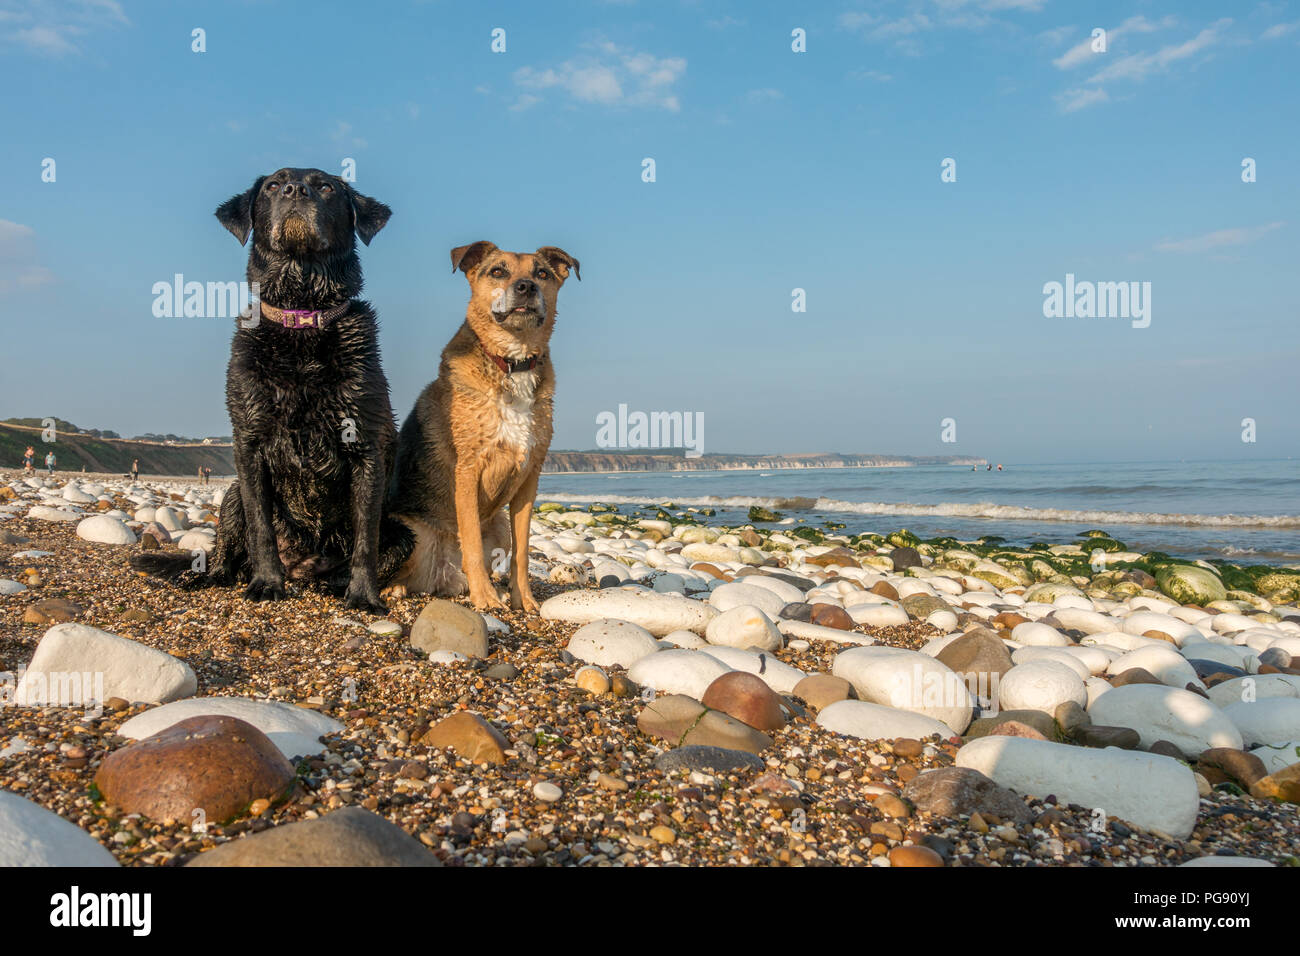 Portrait of two wet, sandy dogs on Bridlington North Beach on a hot summer's day, UK - Stock Image